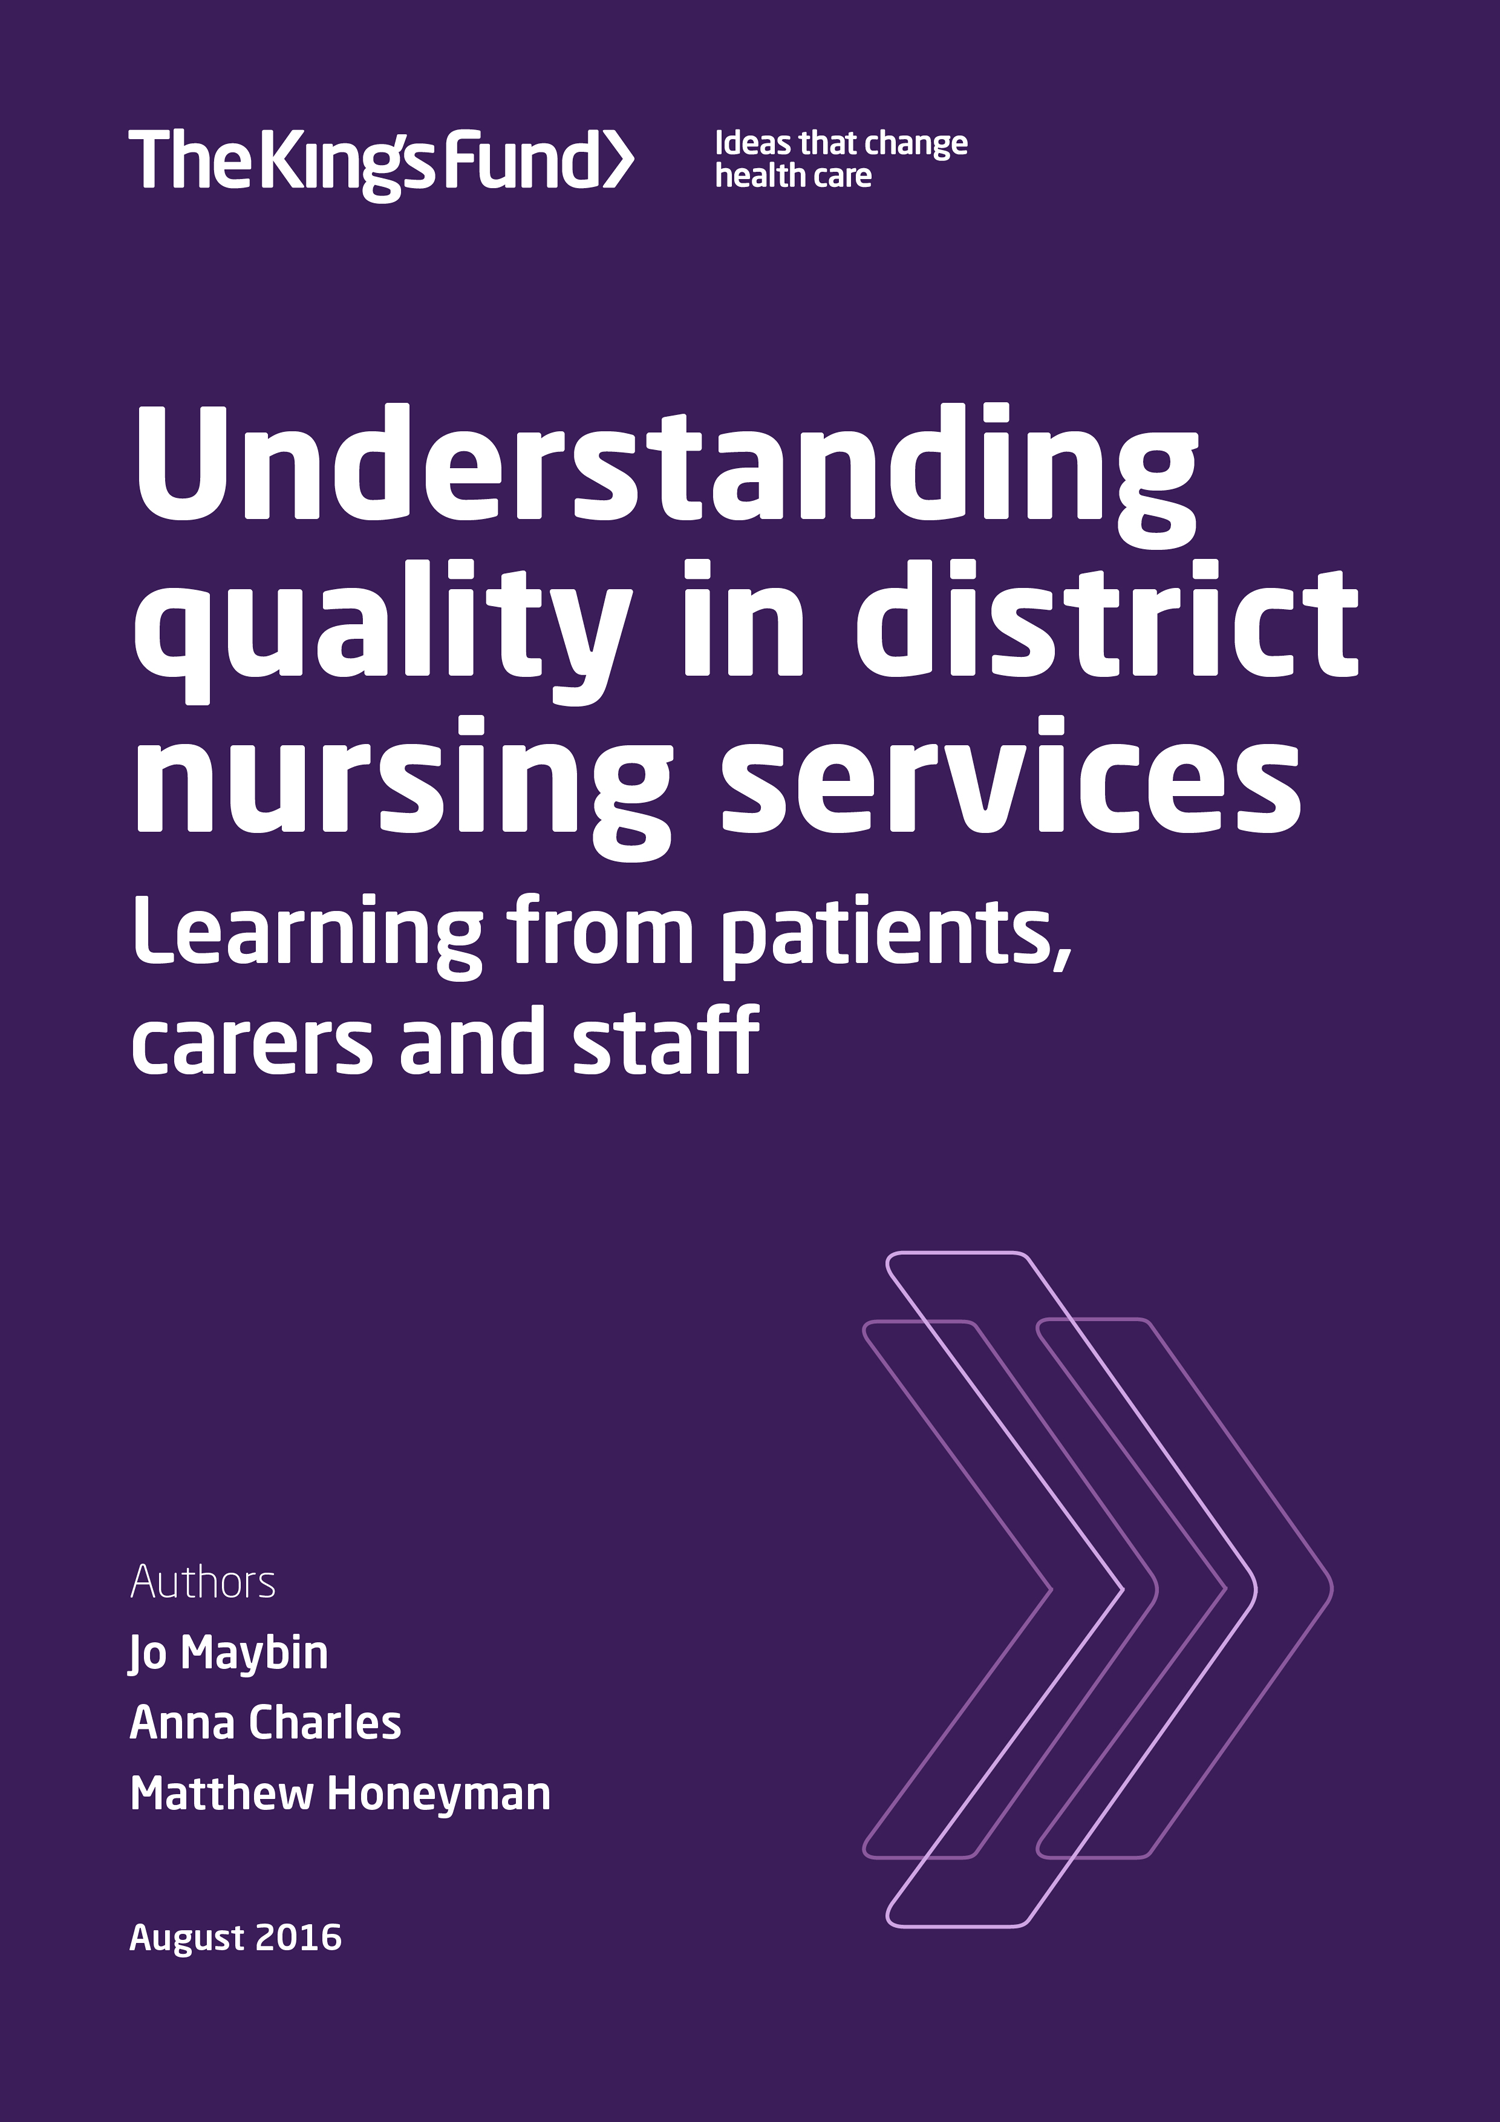 How are District Nurses in the UK funded?